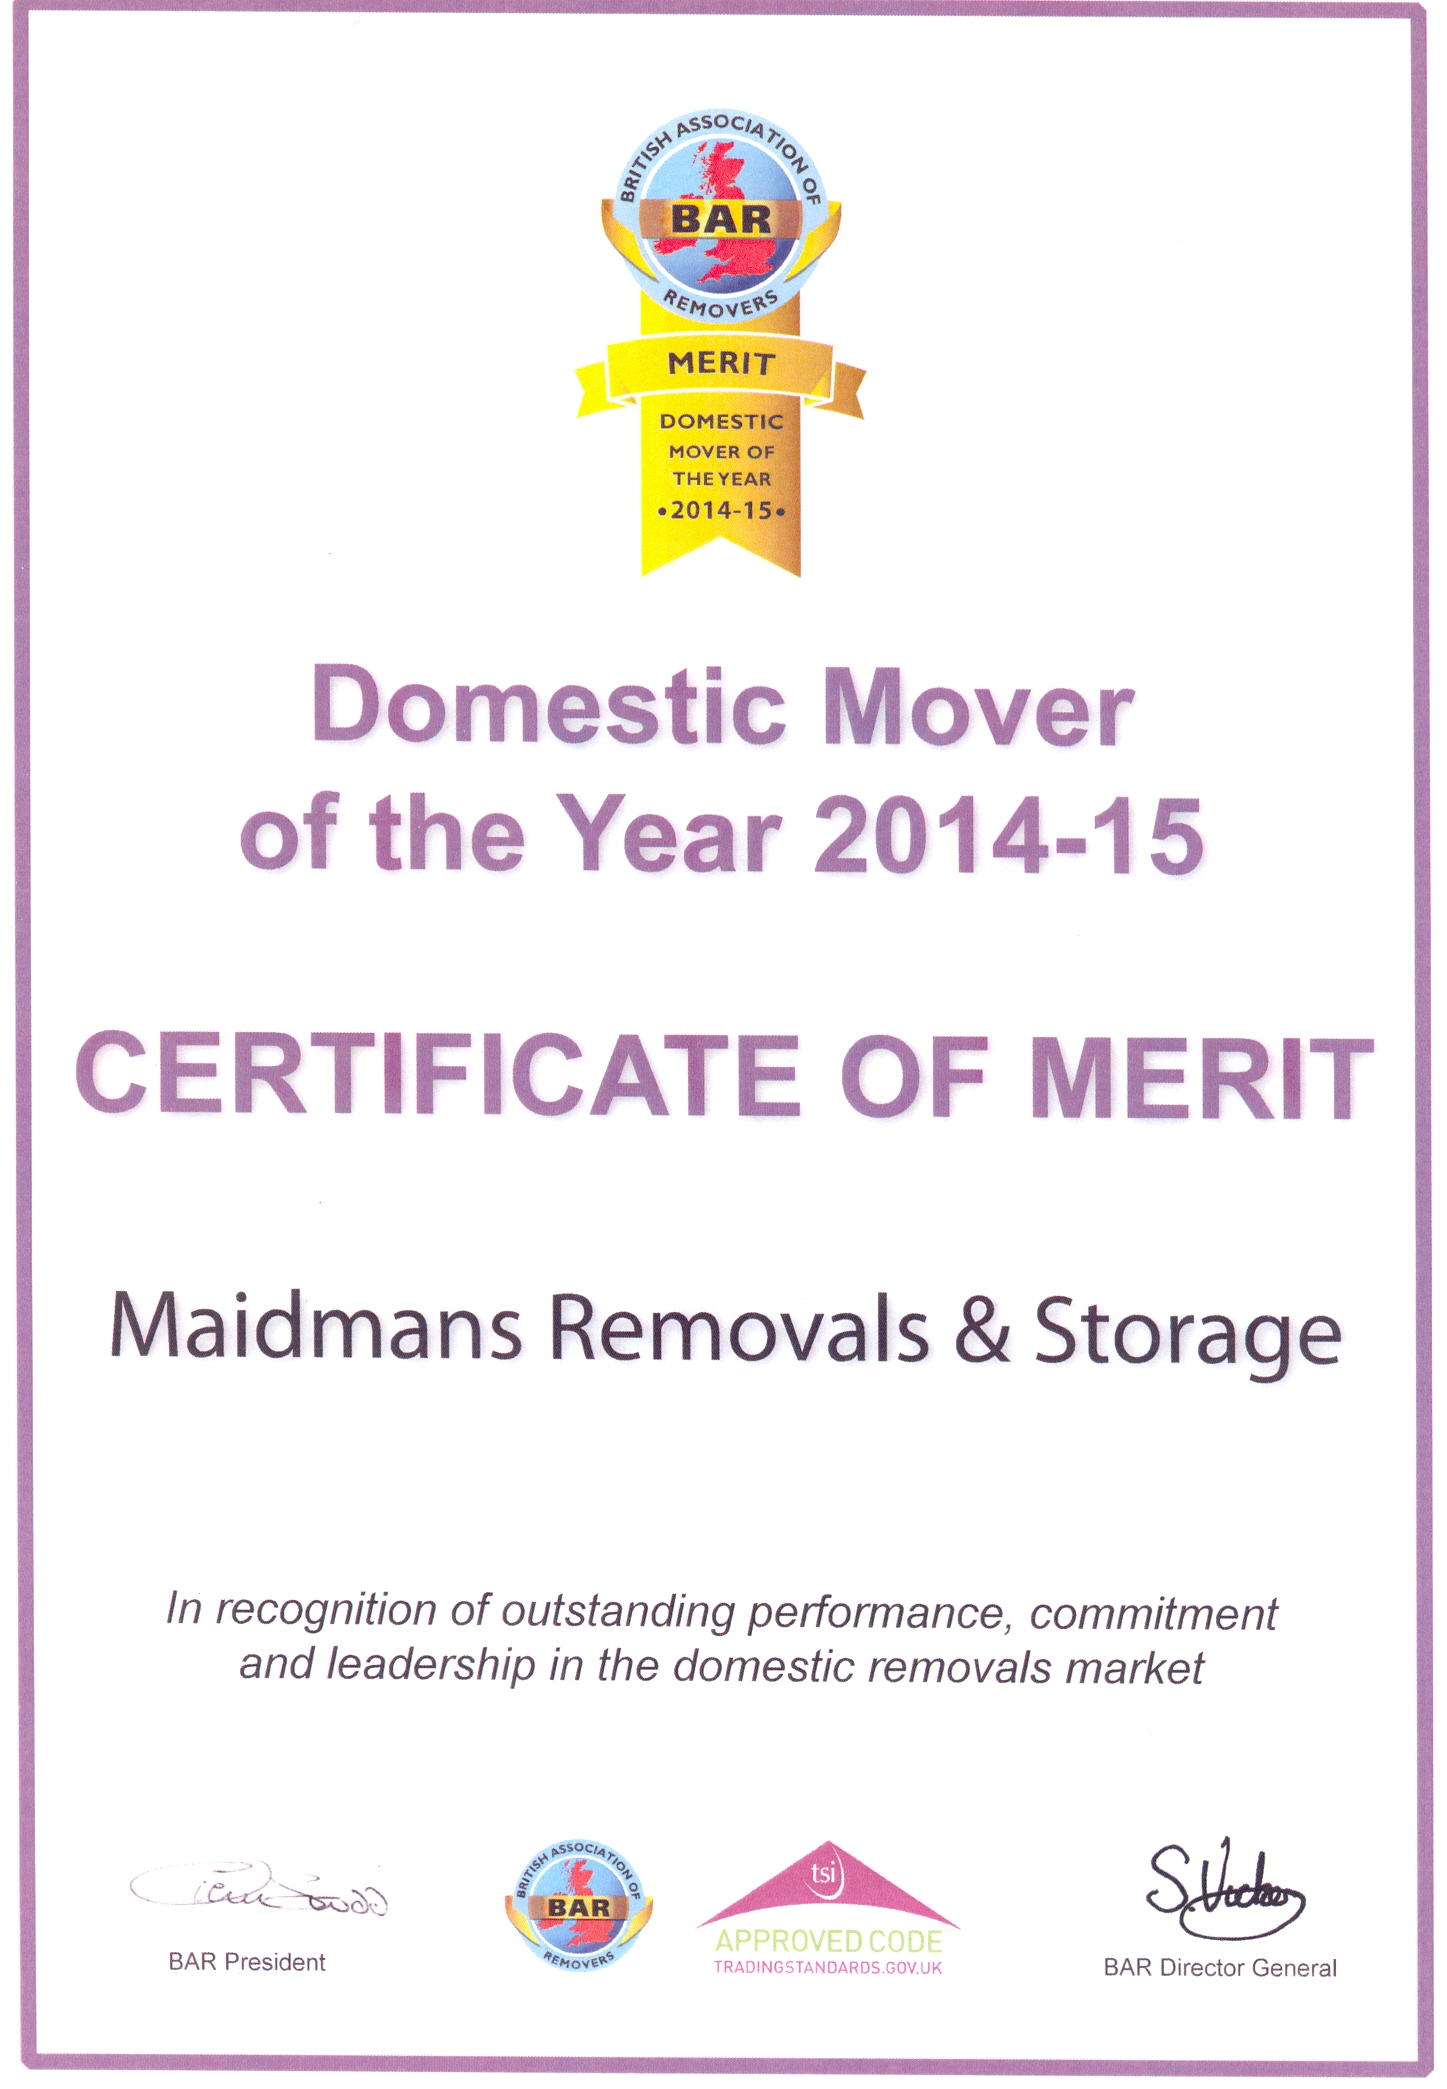 Domestic Mover of the Year Finalist Merit 2014-15